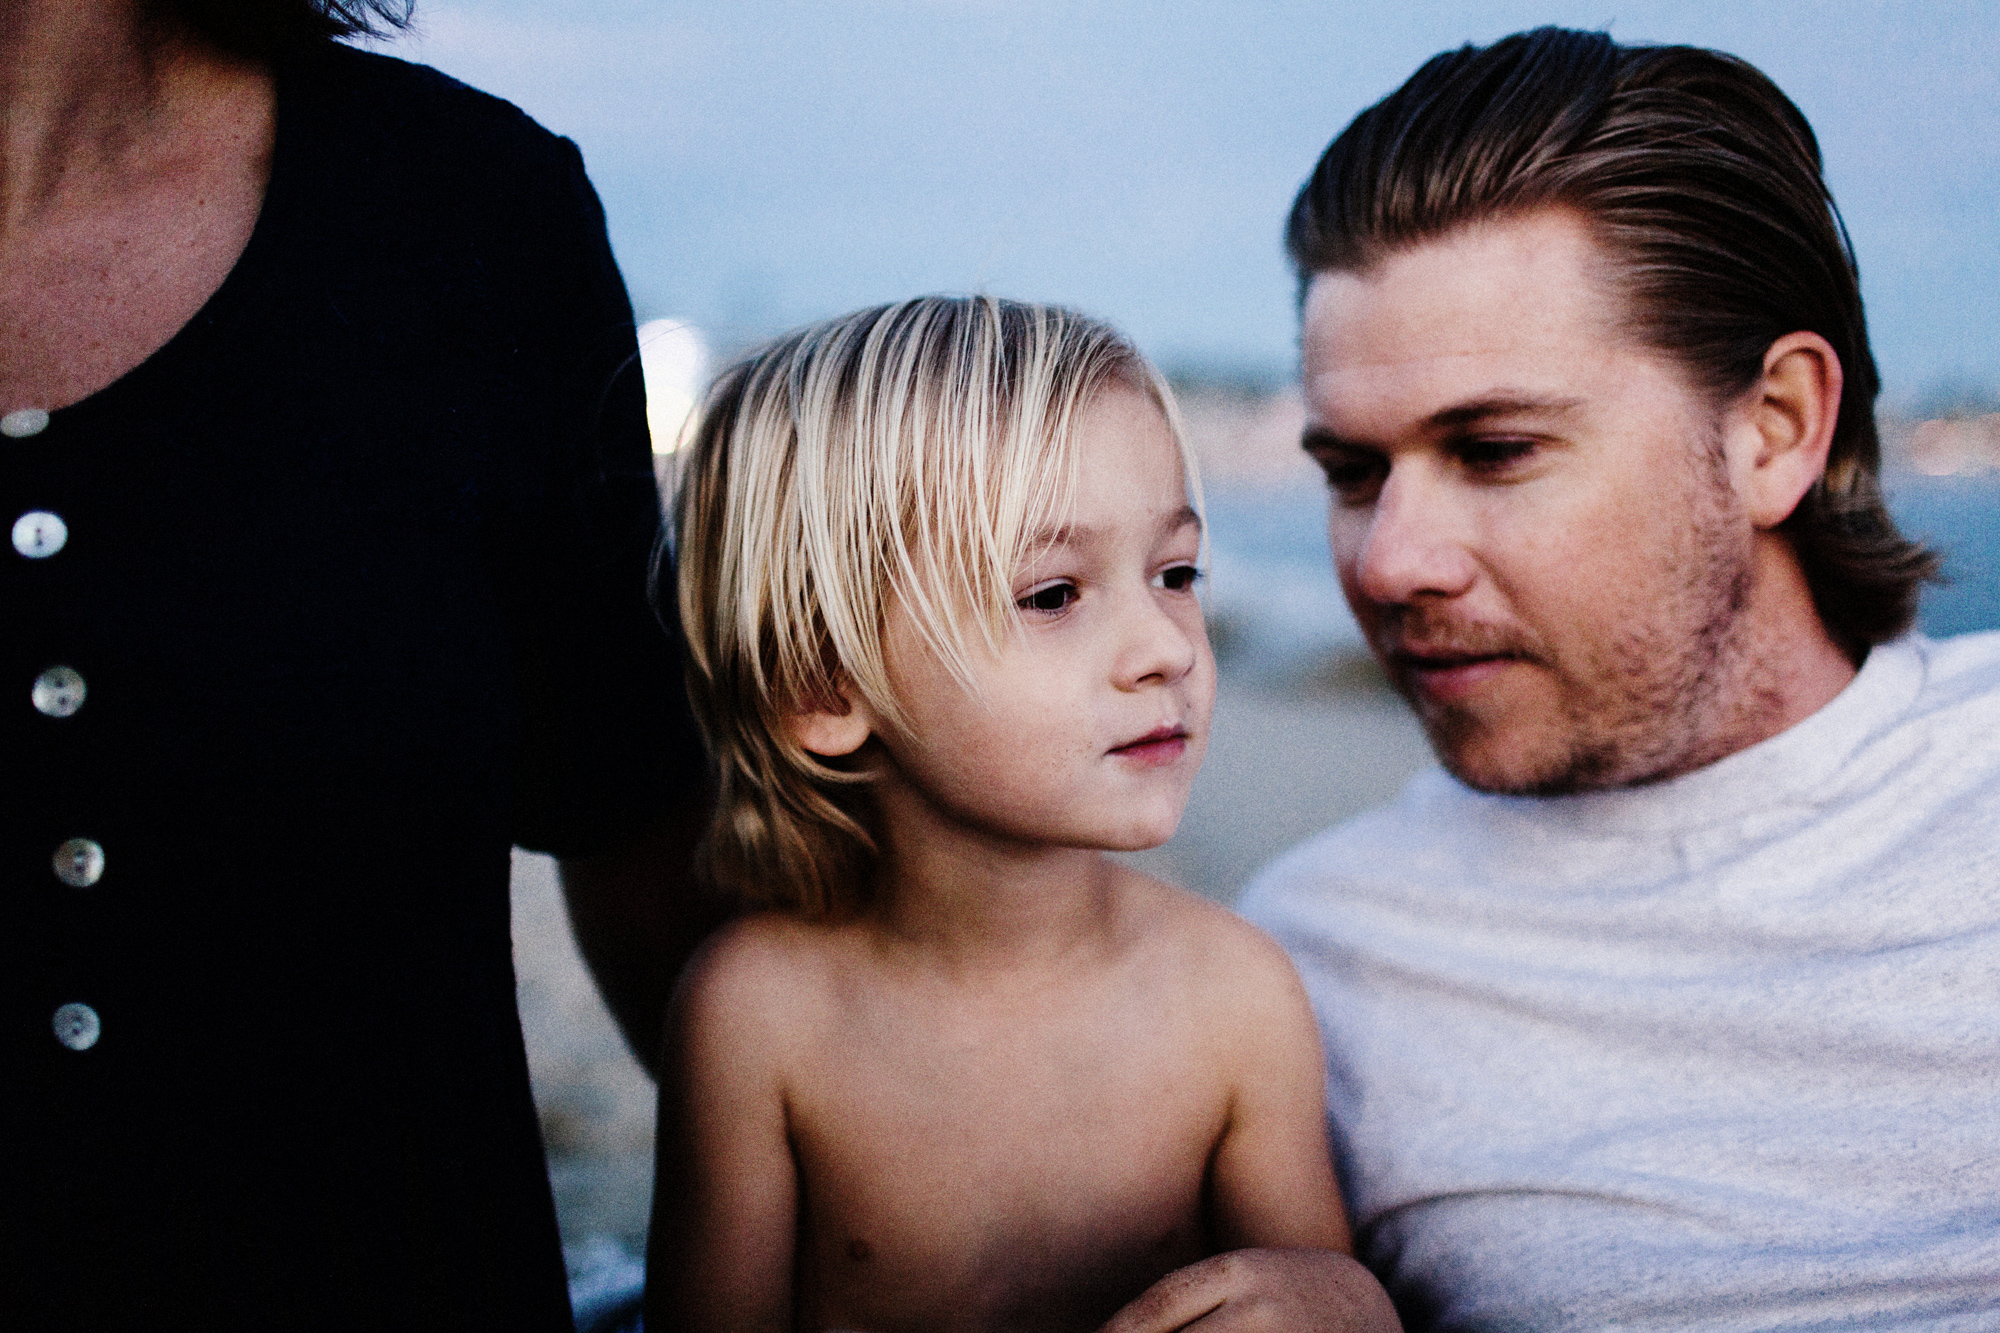 031-family-portrait--mattandtish--venice-beach.jpg